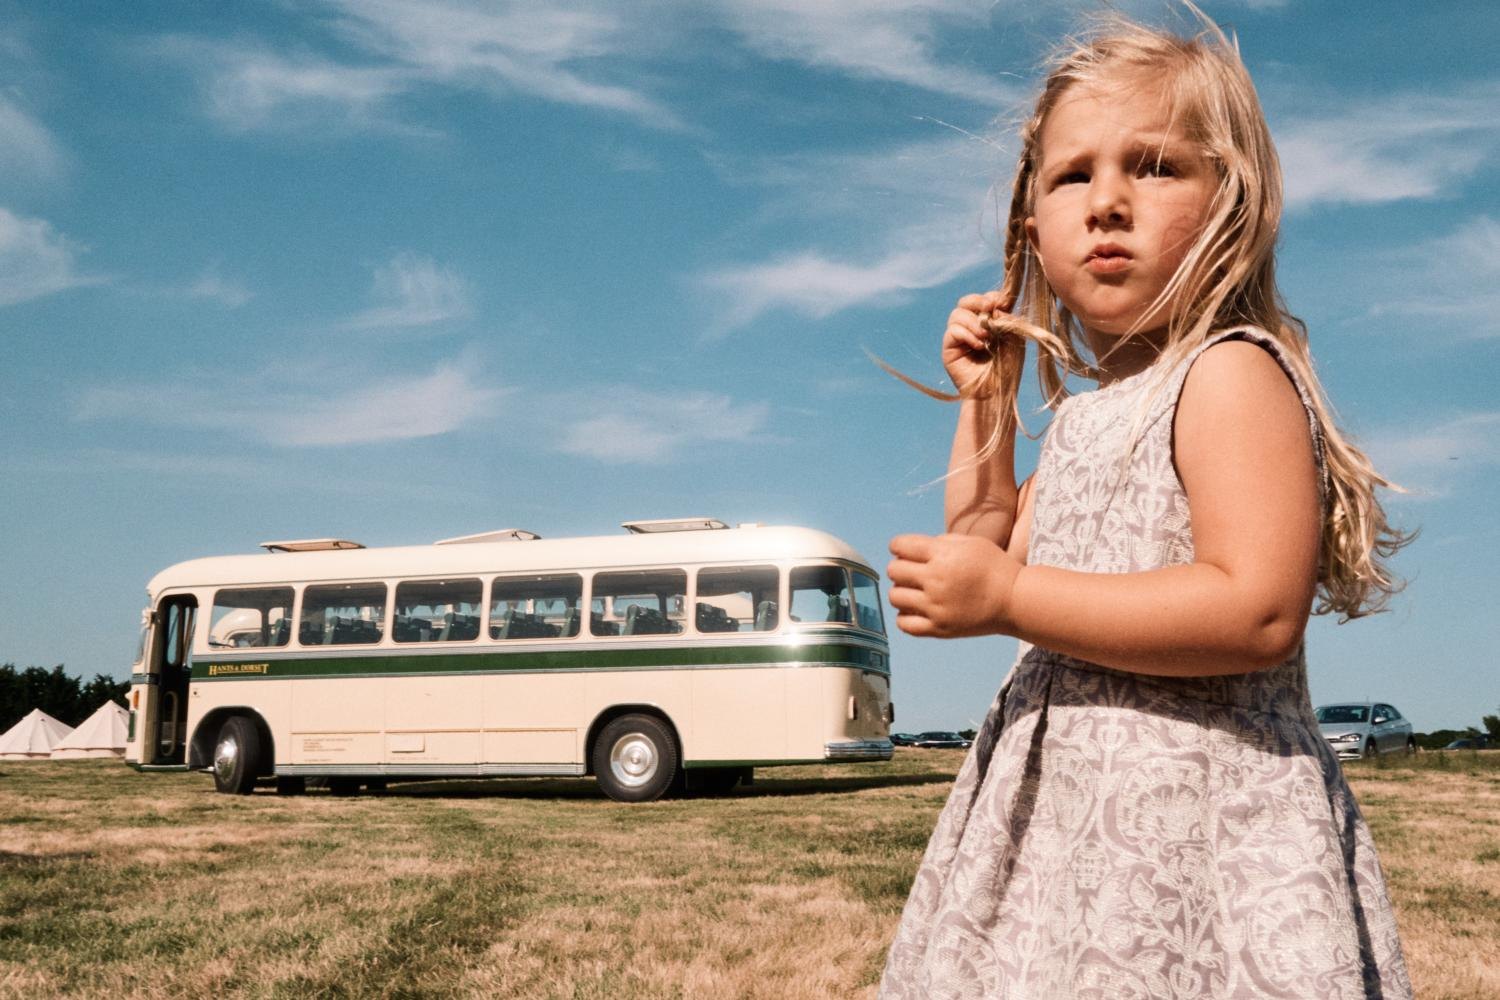 Child in front of a bus